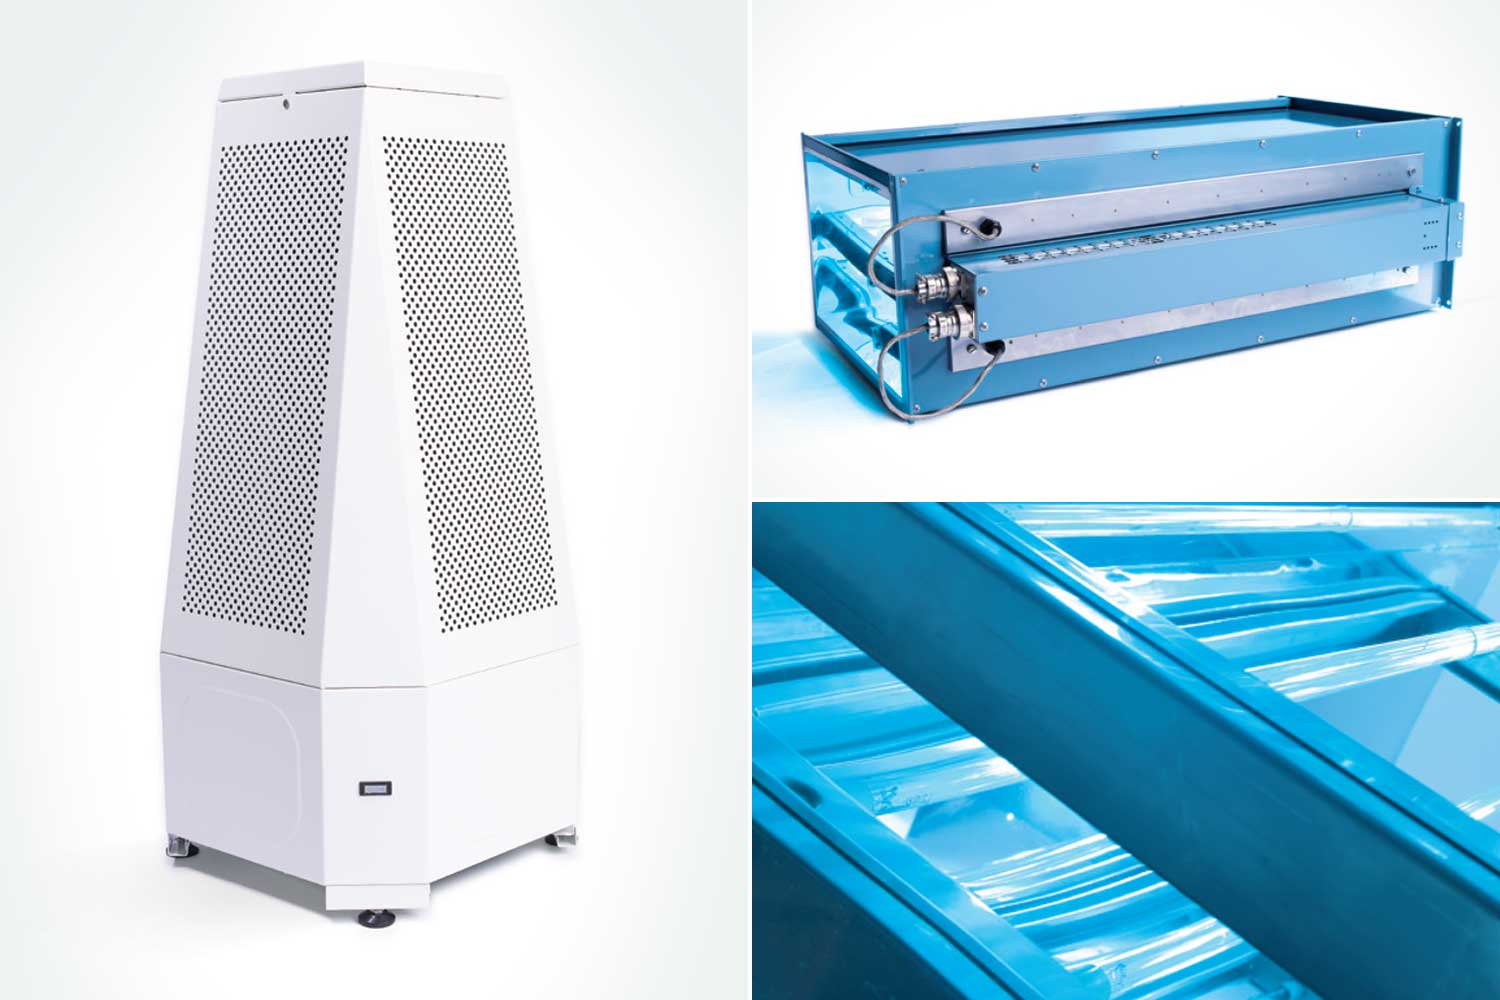 Single room air conditioning unit, top right an in-duct air conditioning unit and bottom right the UV lamps.